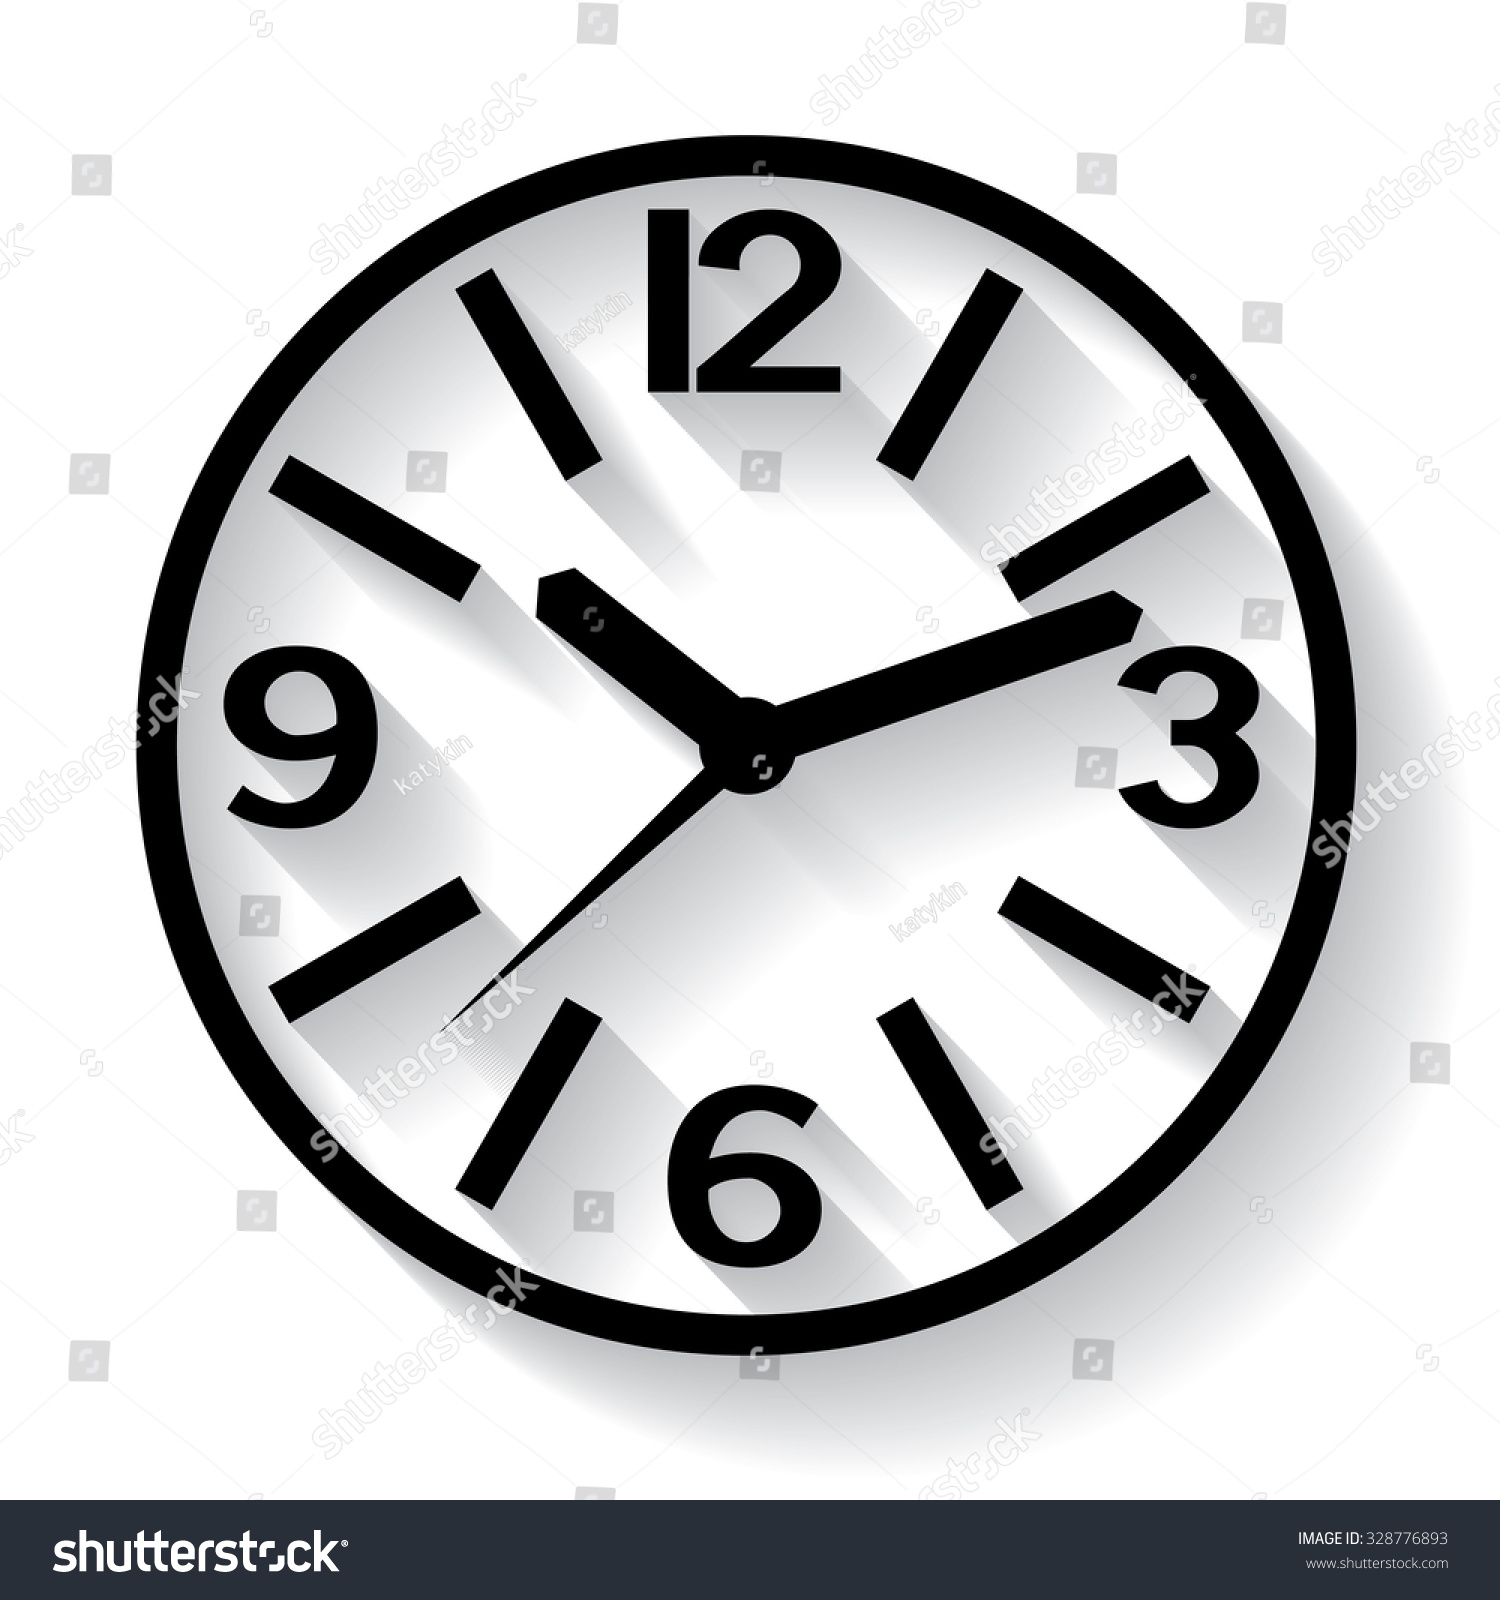 Wall mounted digital clock clock picture stock vector 328776893 wall mounted digital clock clock picture hours watch for wall mounting image amipublicfo Image collections